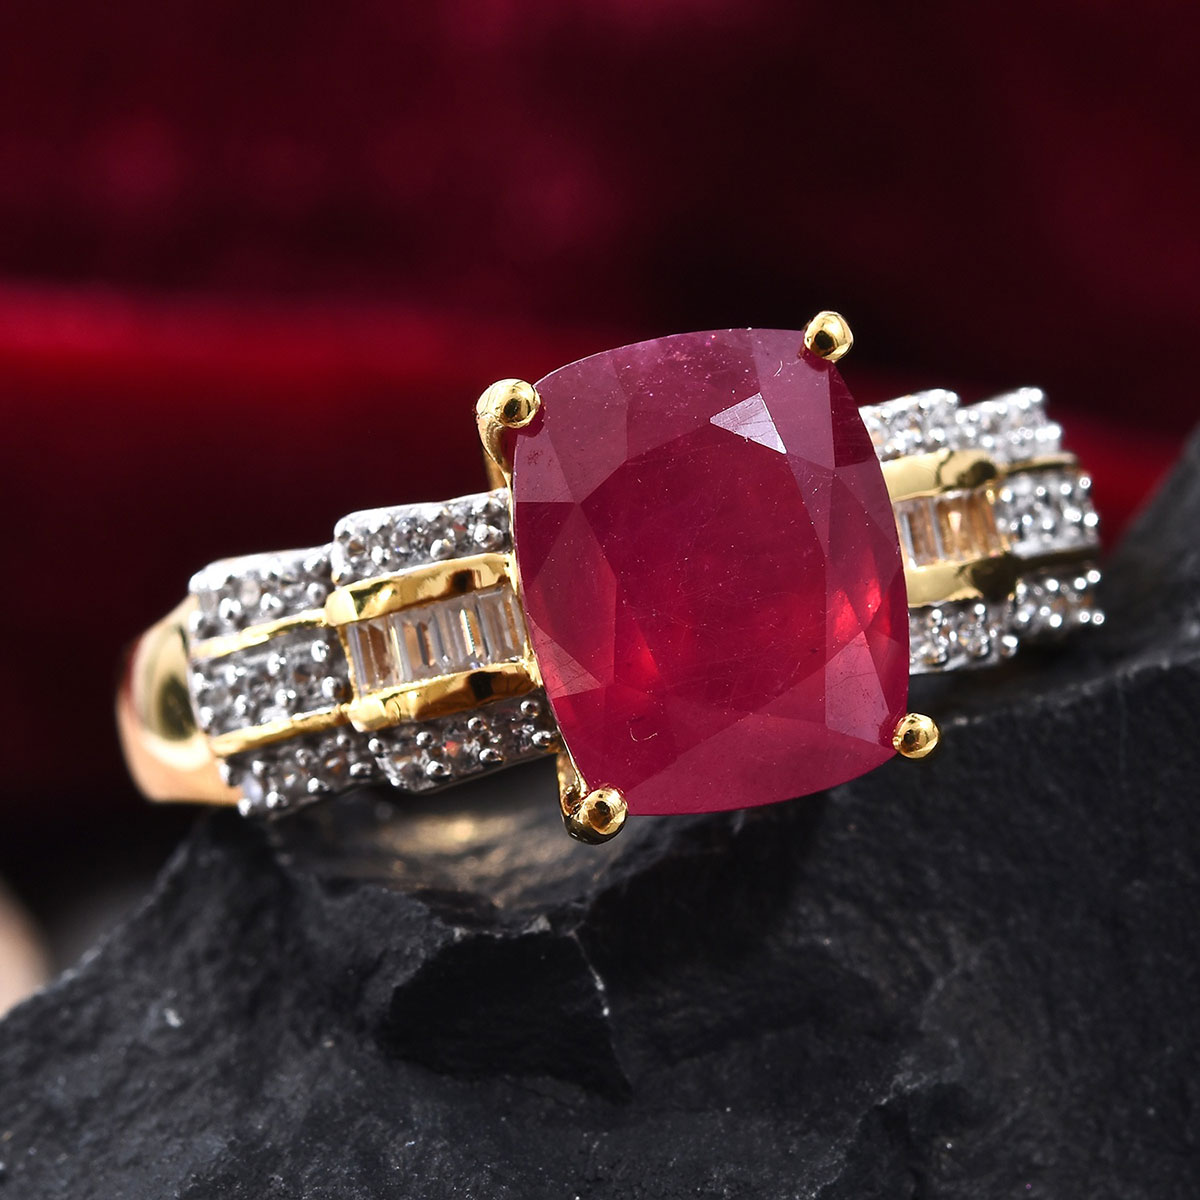 Niassa Ruby, Zircon Ring in Vermeil YG Over Sterling Silver (Size 9.0) 6.97 ctw